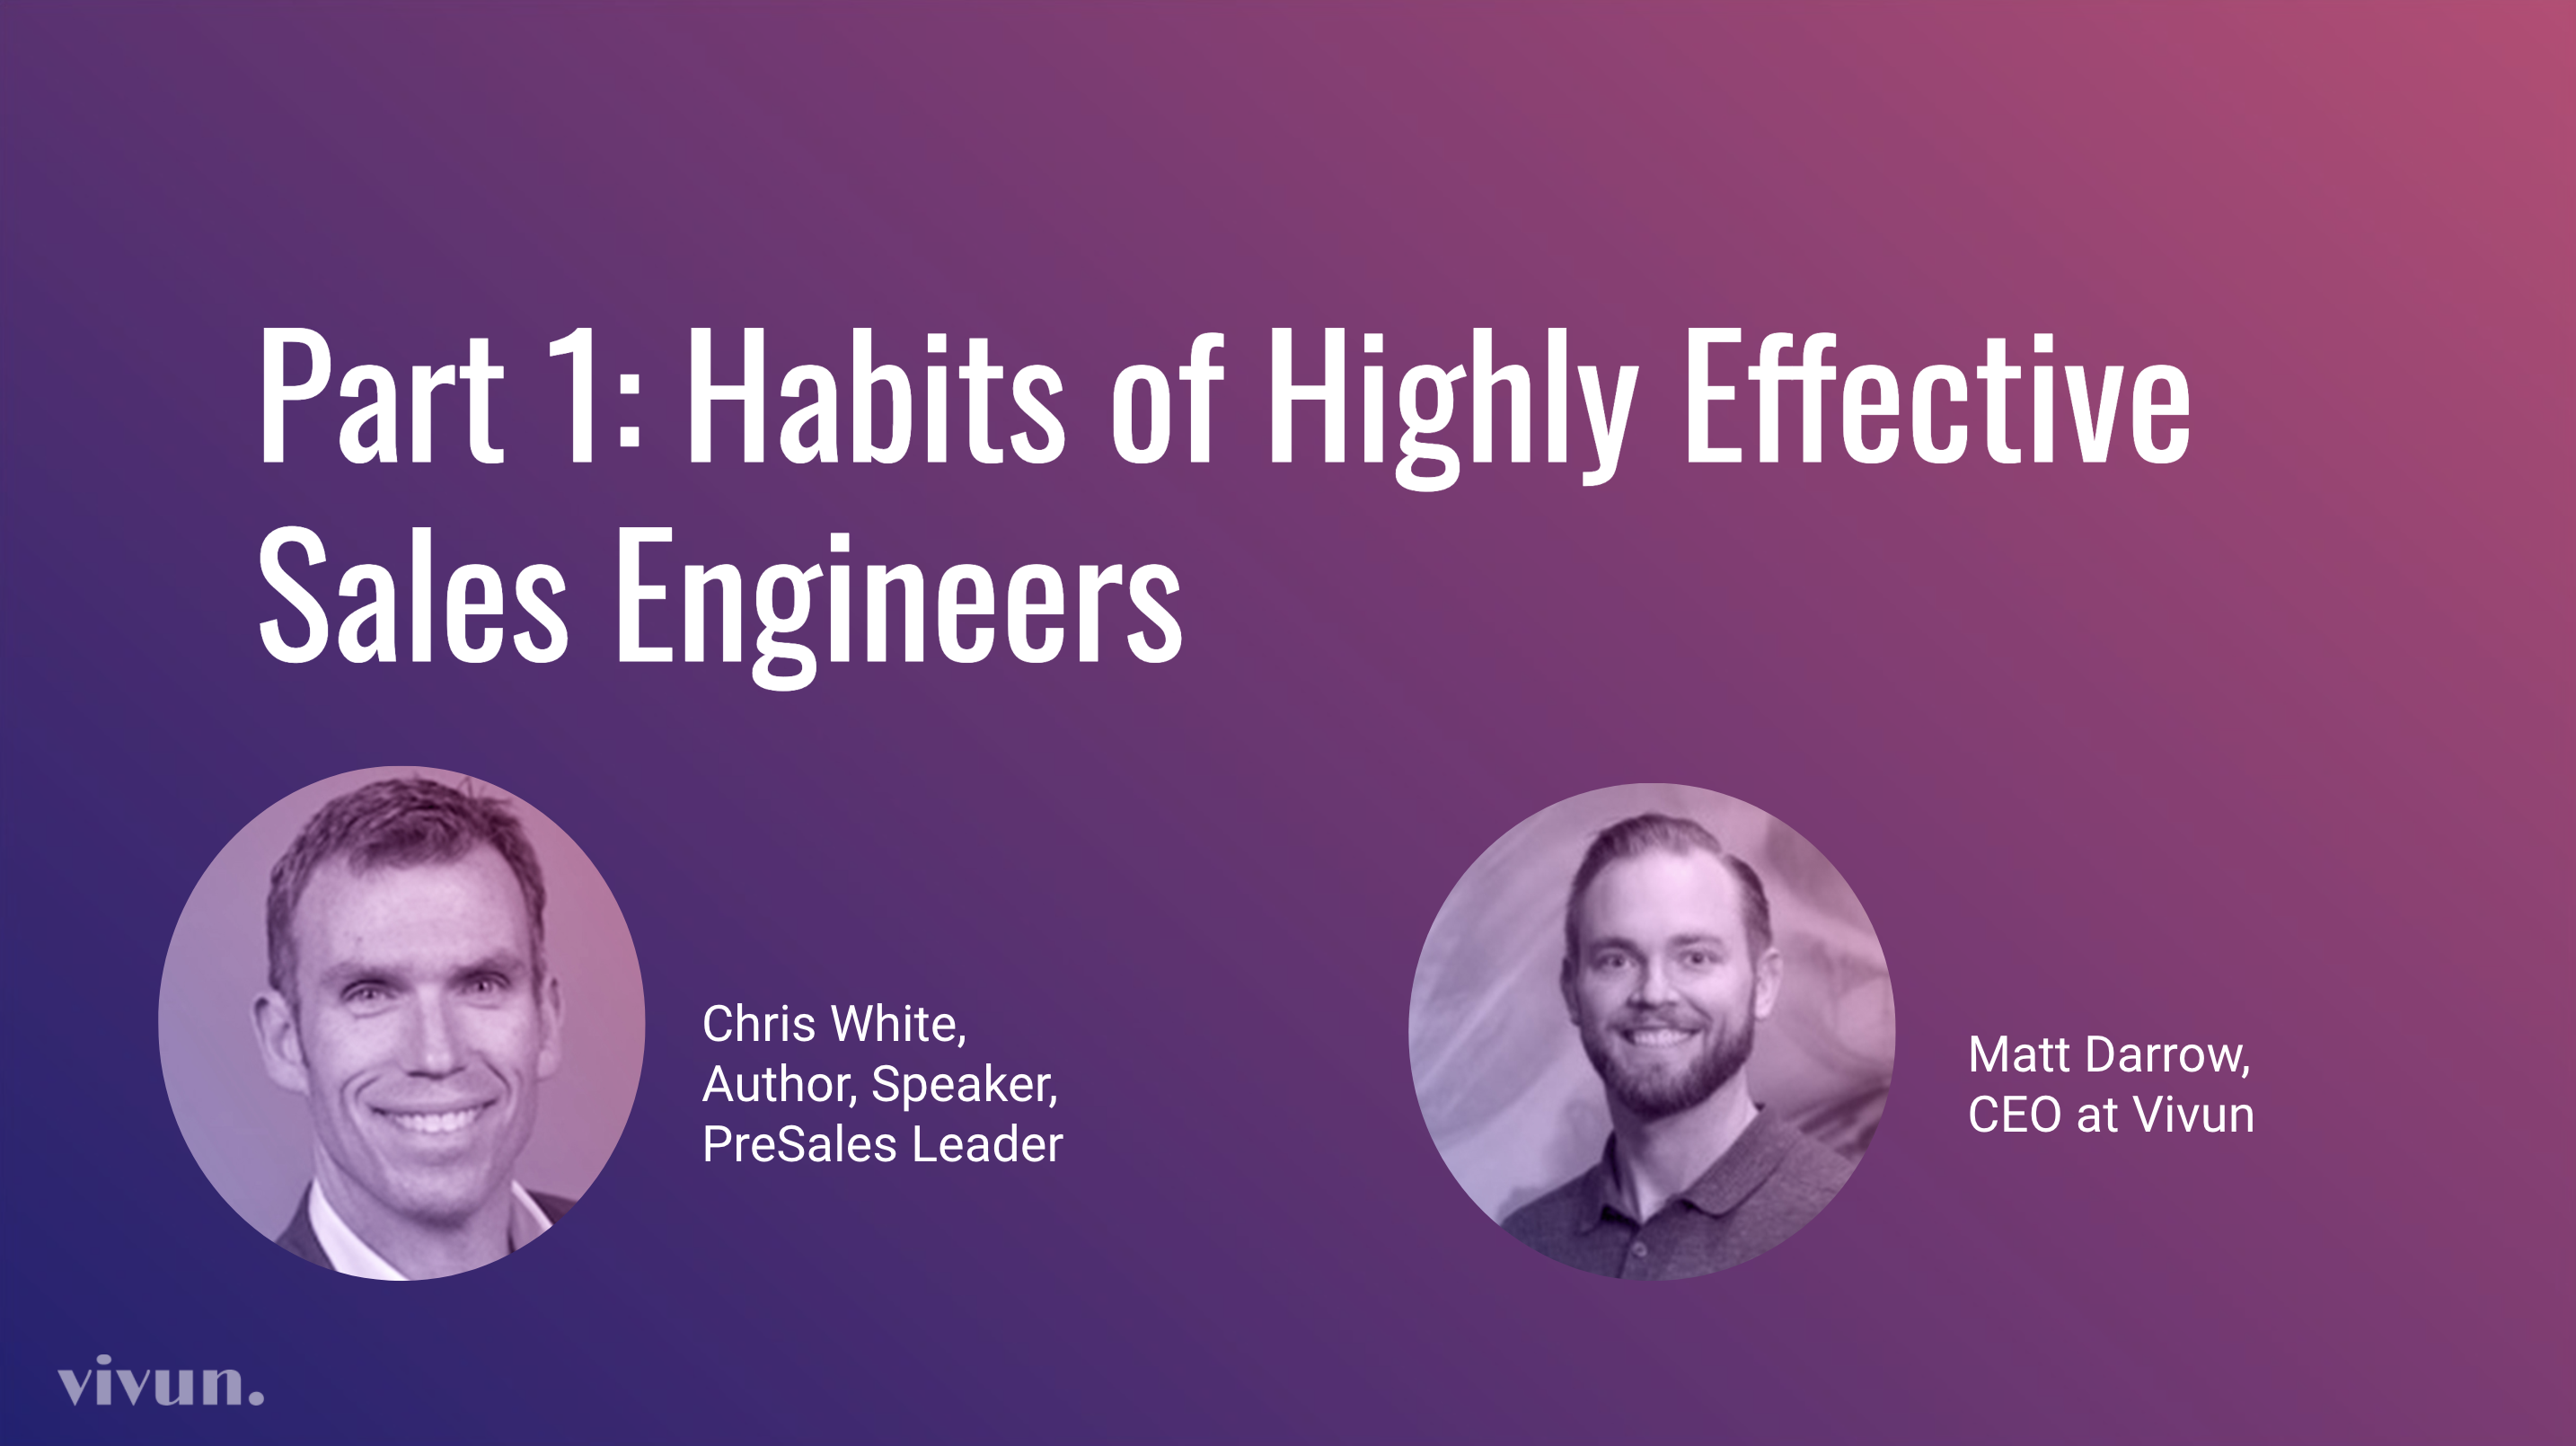 Partner, Probe, and Prepare –Habits of Highly Effective Sales Engineers (Part 1)